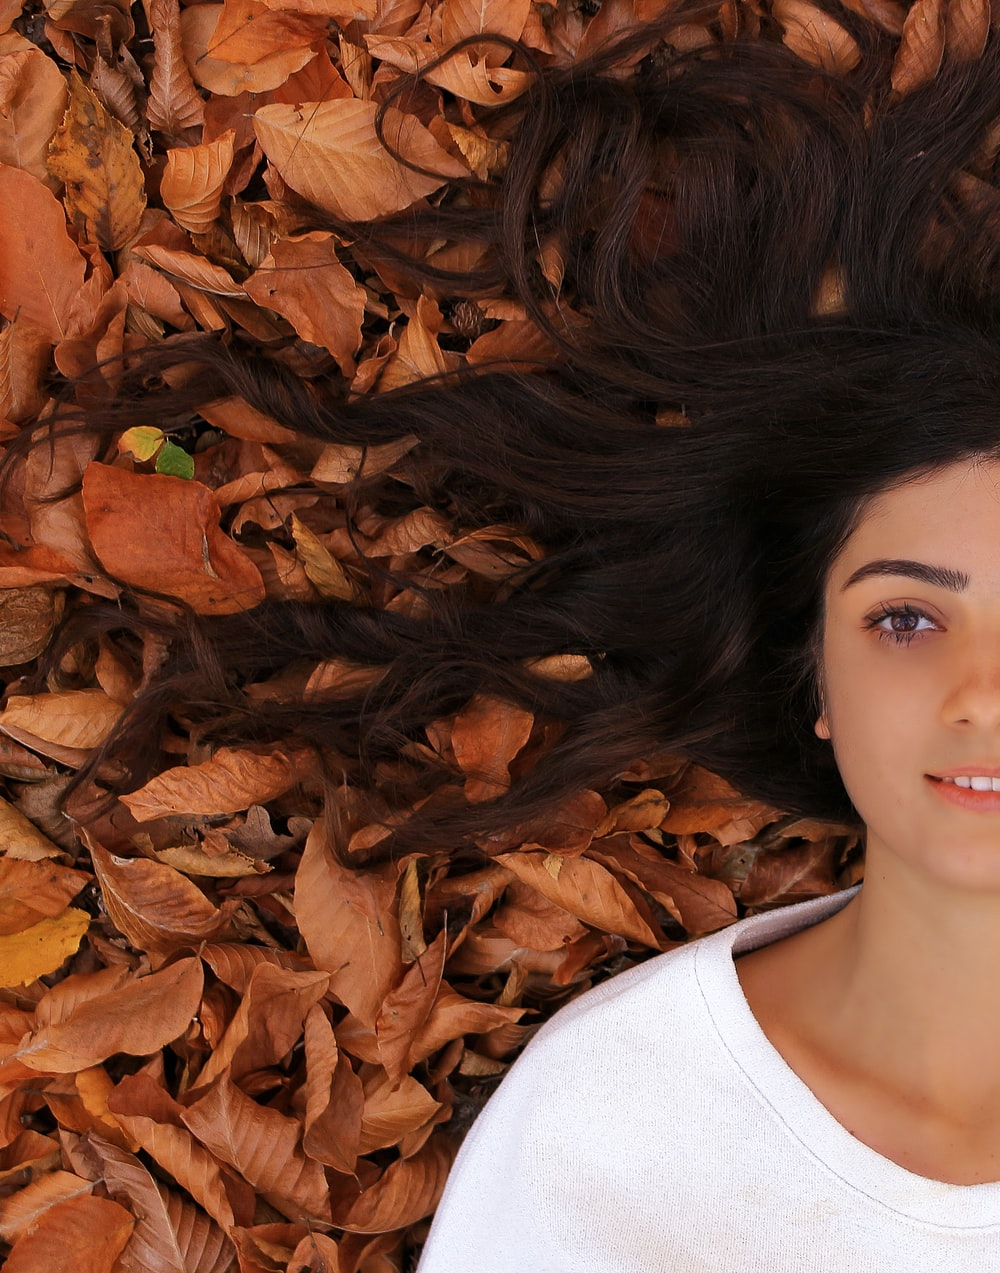 woman lying on ground with brown leaves